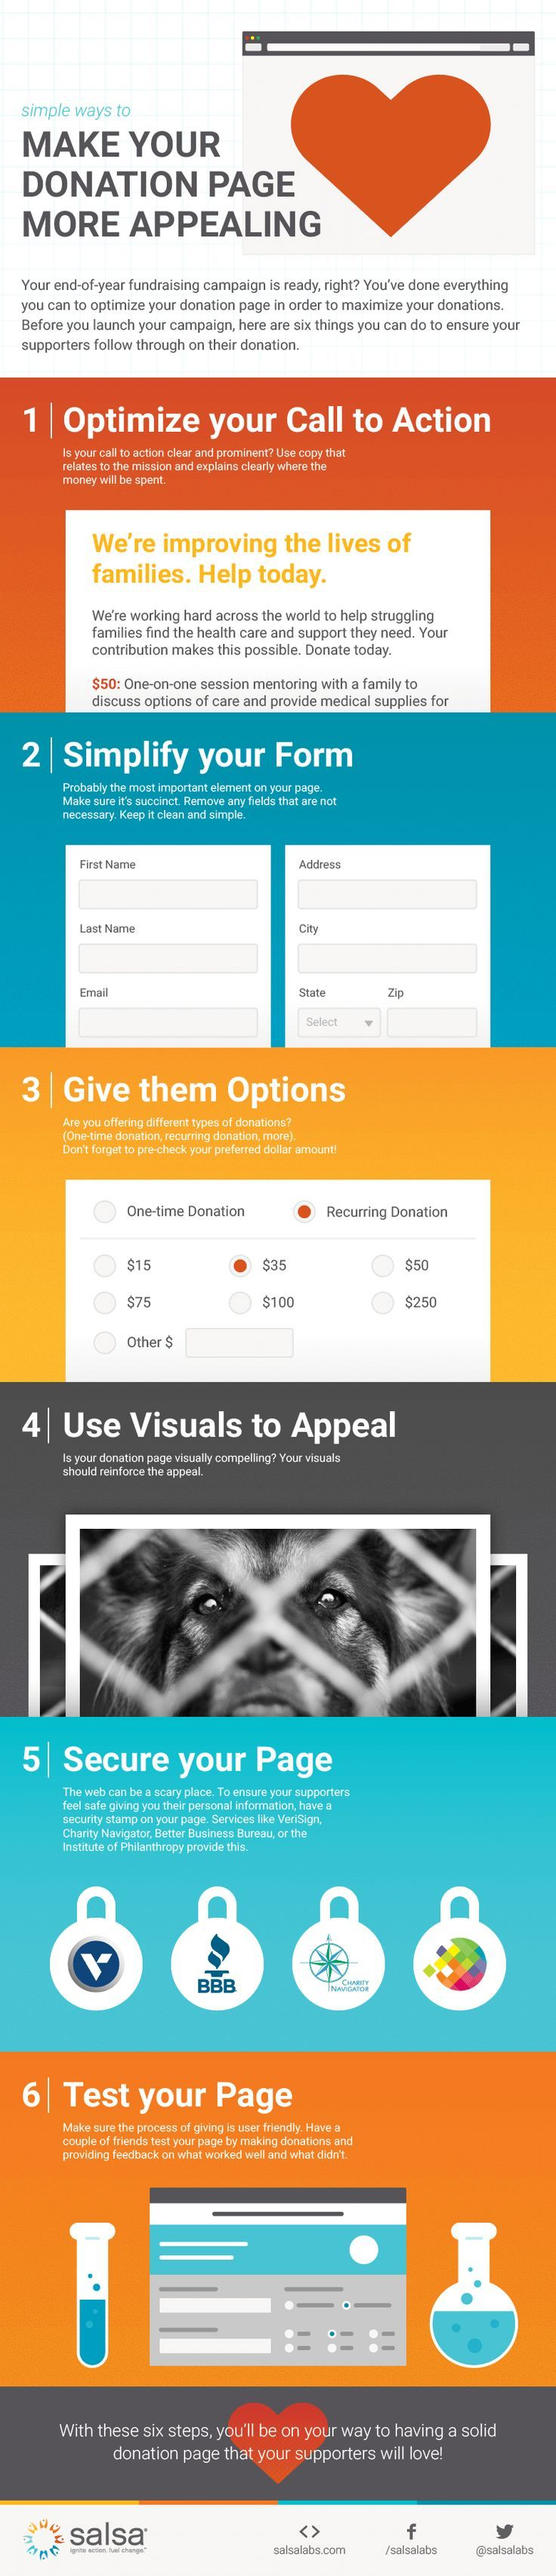 Make Your Donation Page More Appealing http://www.manhattanstreetcapital.com